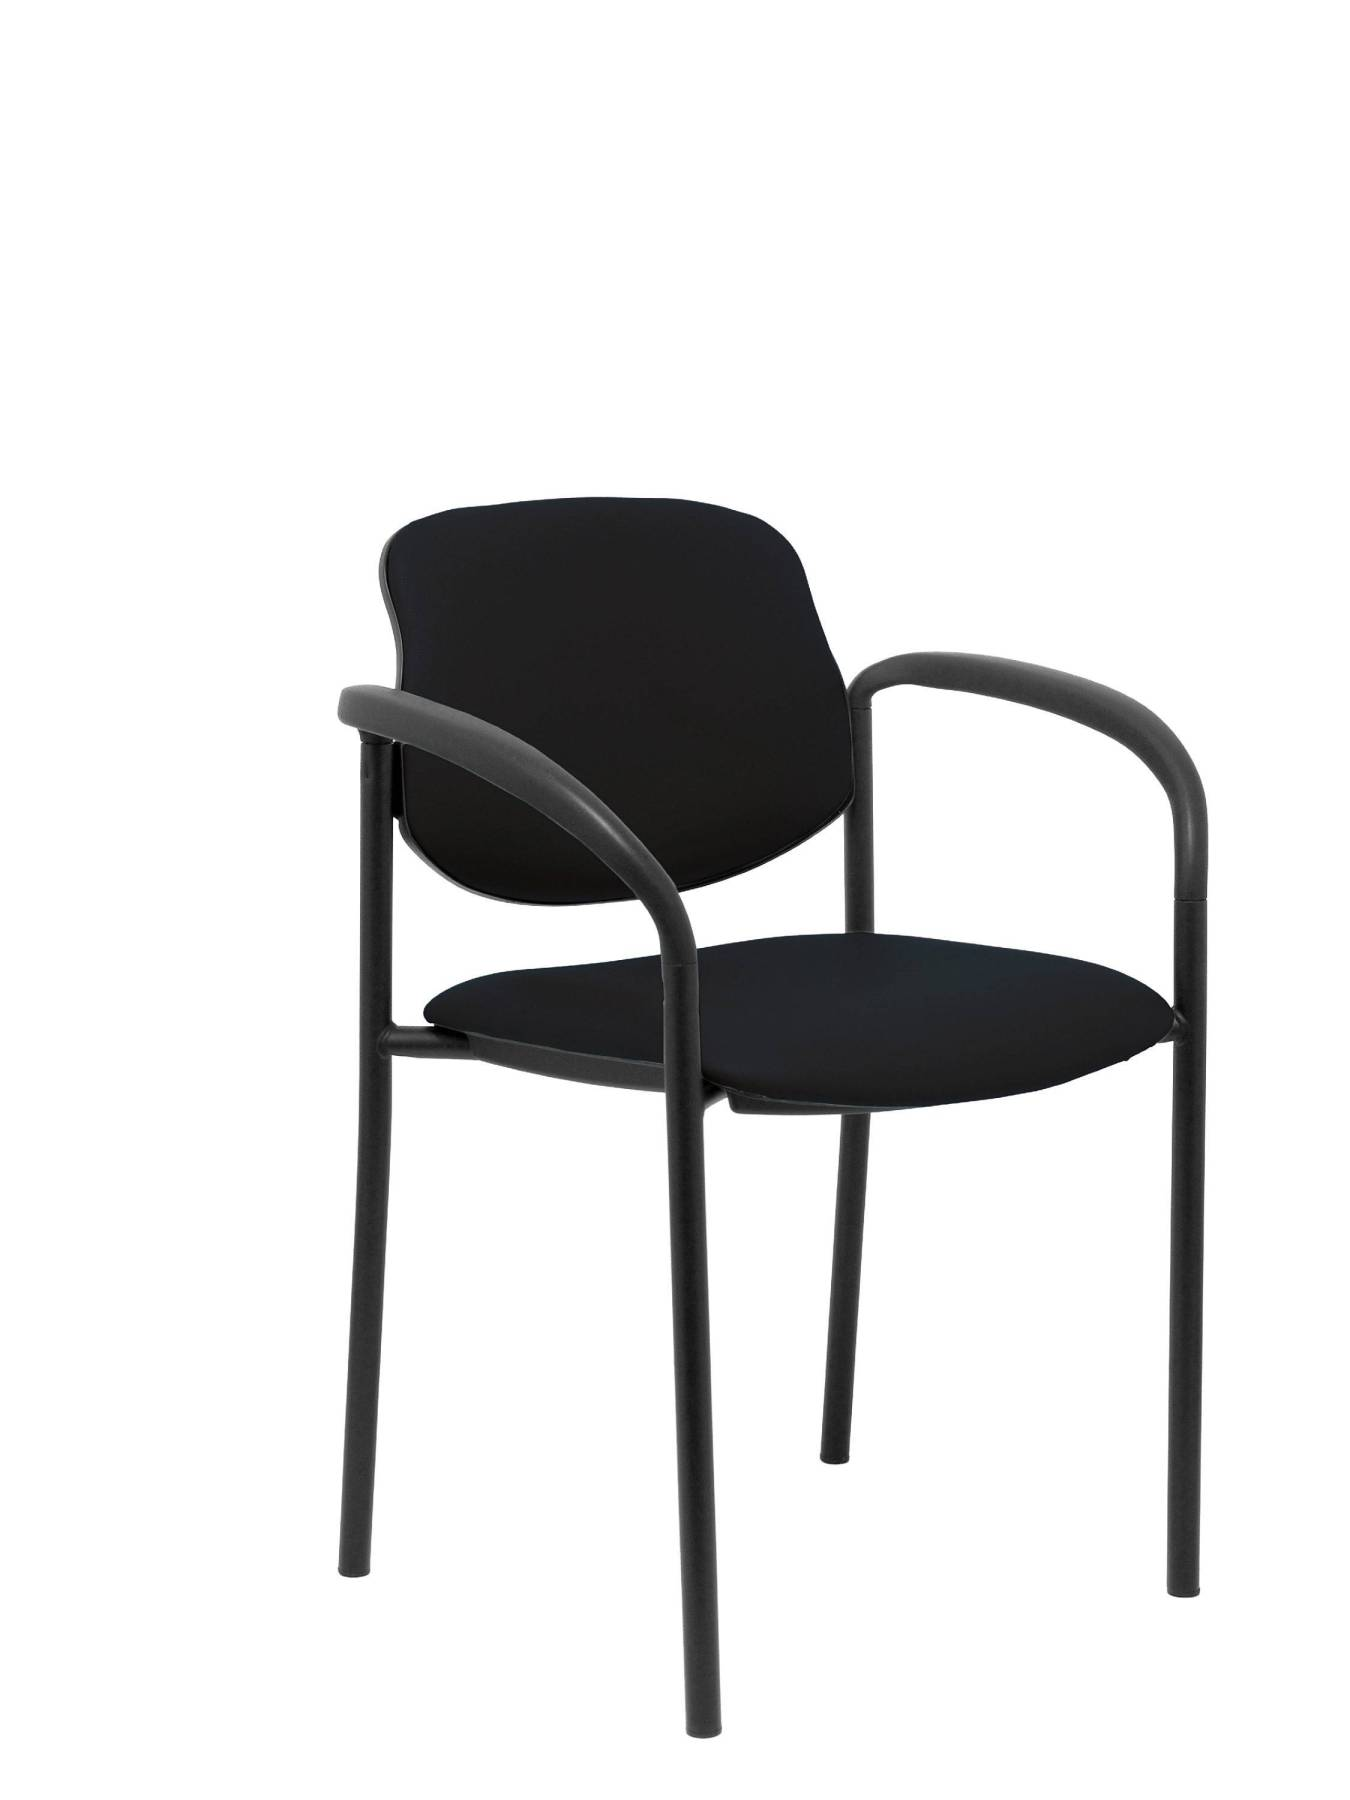 Visitor Chair 4's Topsy, With Arms And Estructrua Negro-up Seat And Backstop Upholstered In Tissue Similpiel Black PIQU